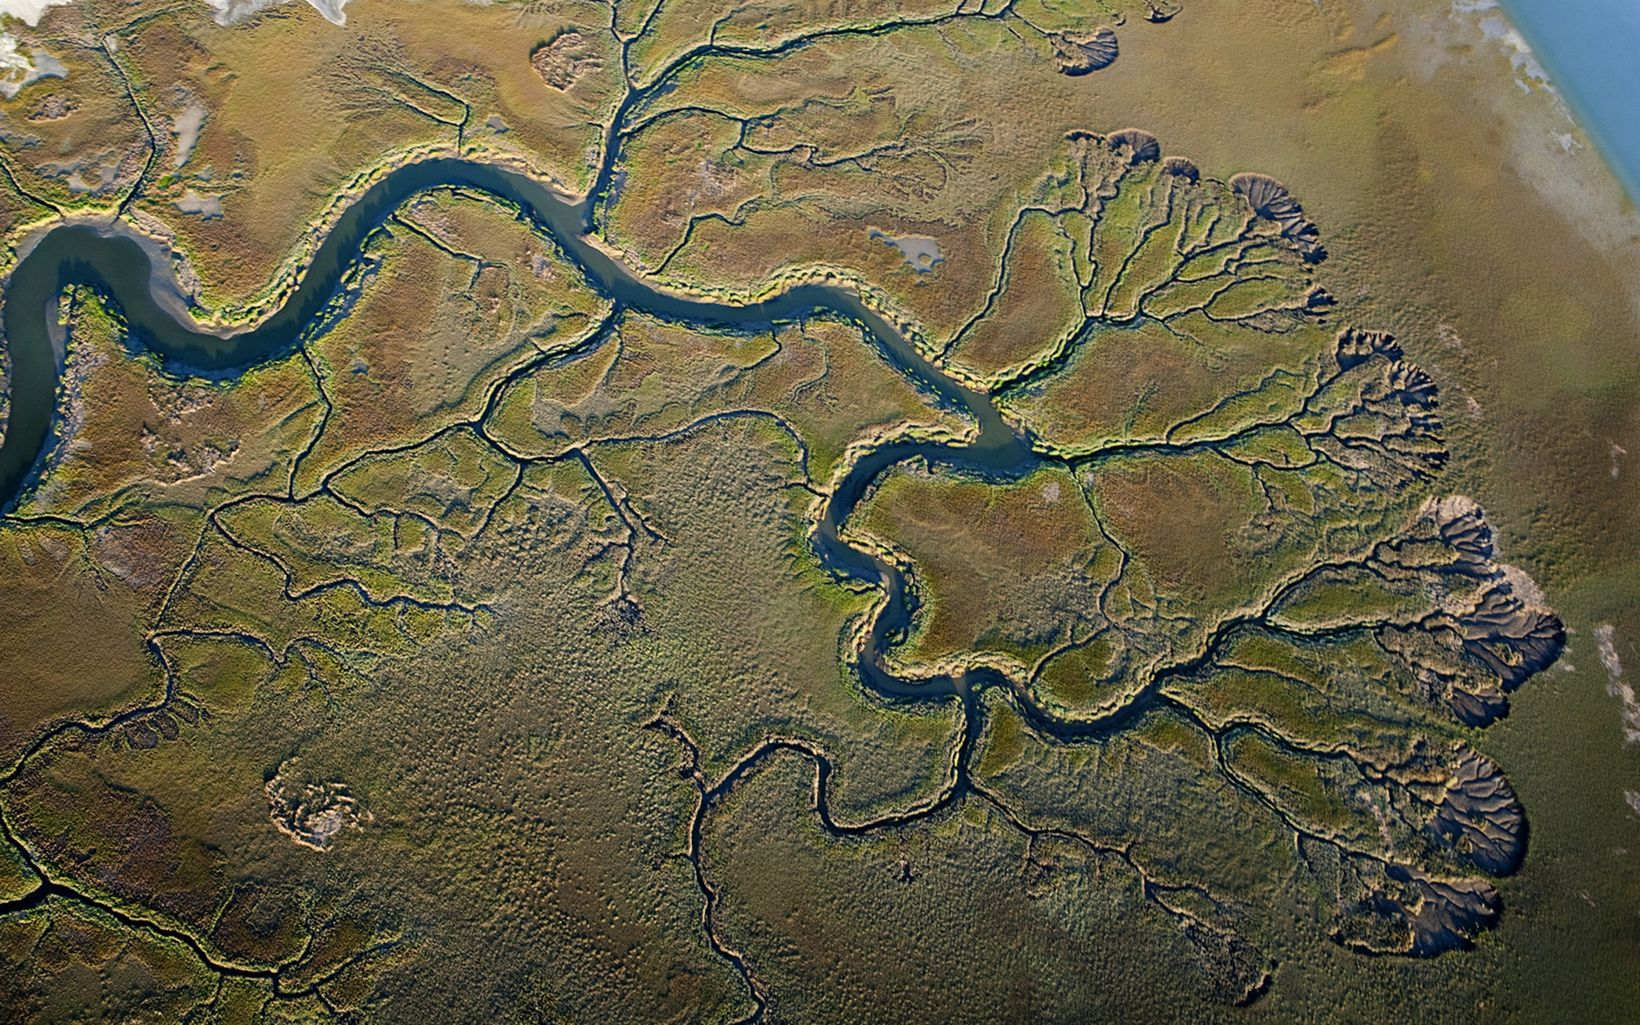 An aerial view of a river delta with distinct yellows,